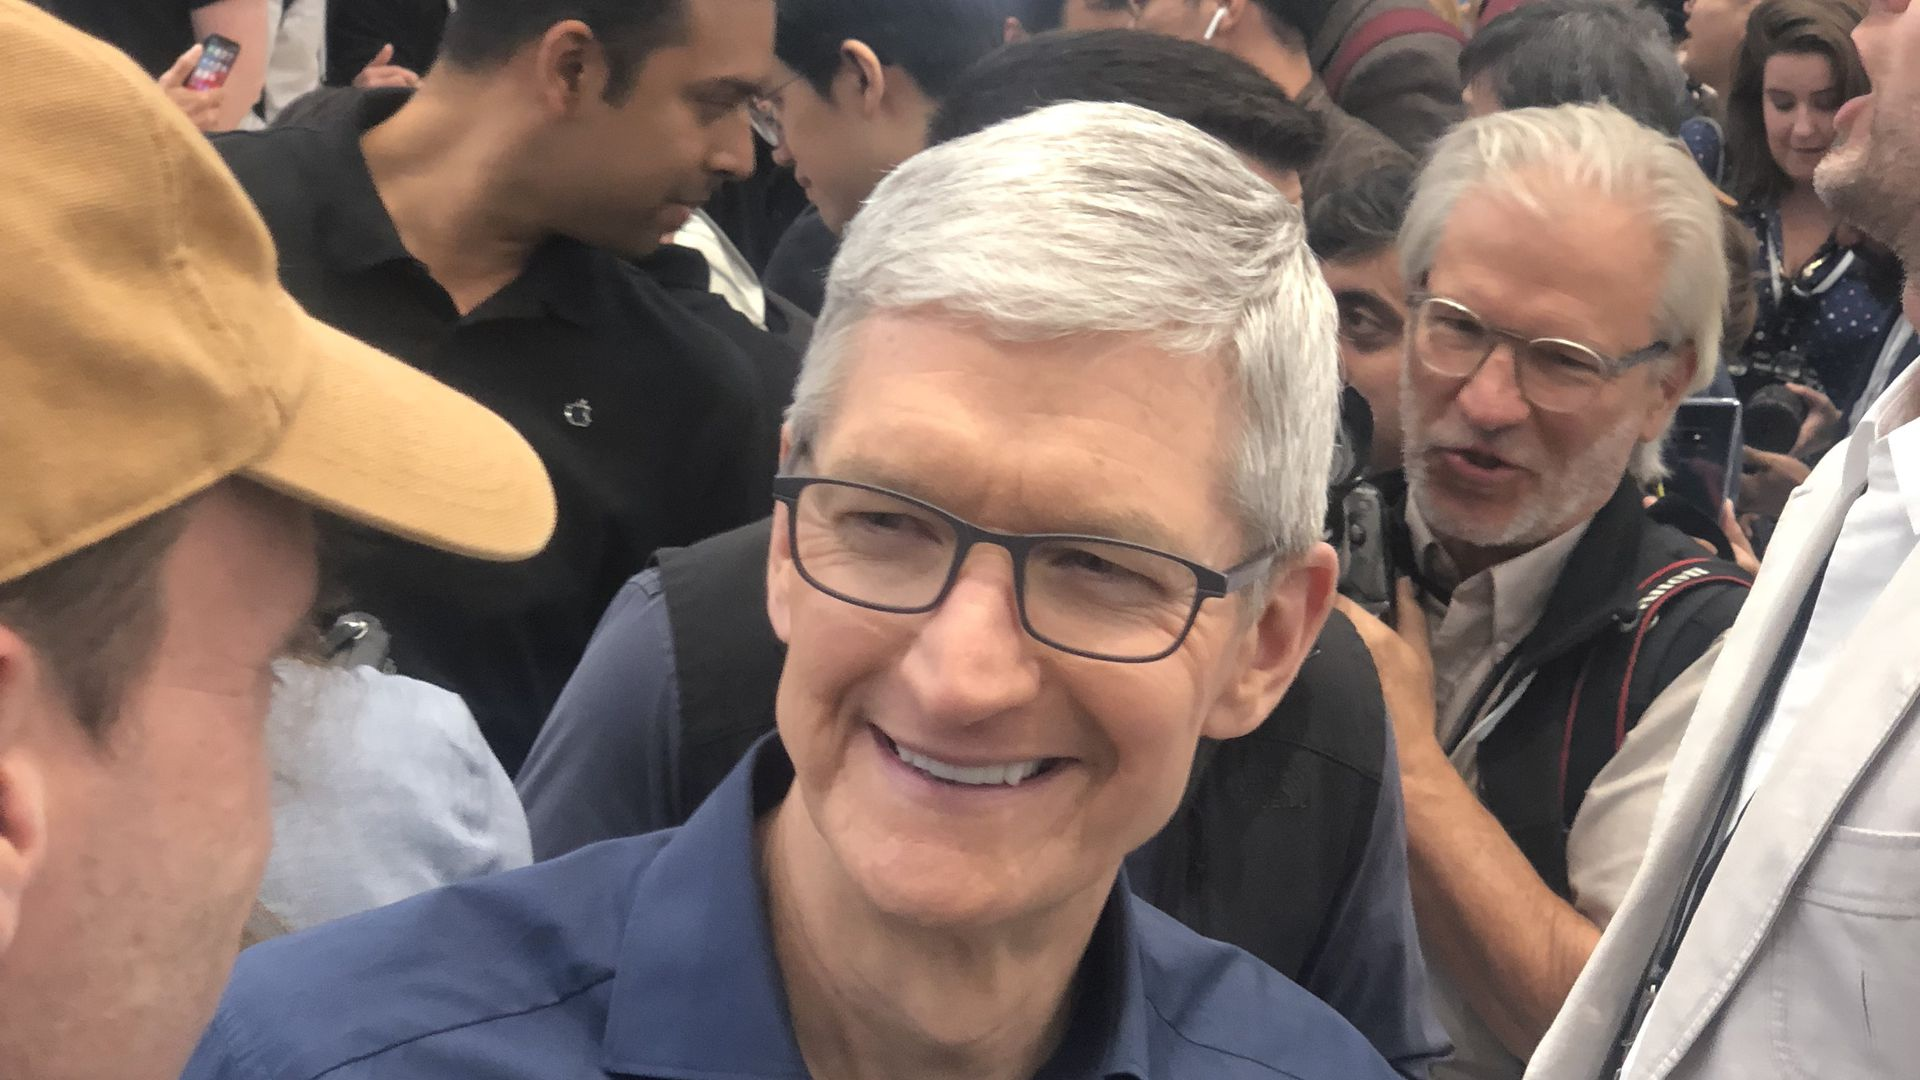 Apple CEO Tim Cook at a 2018 product launch